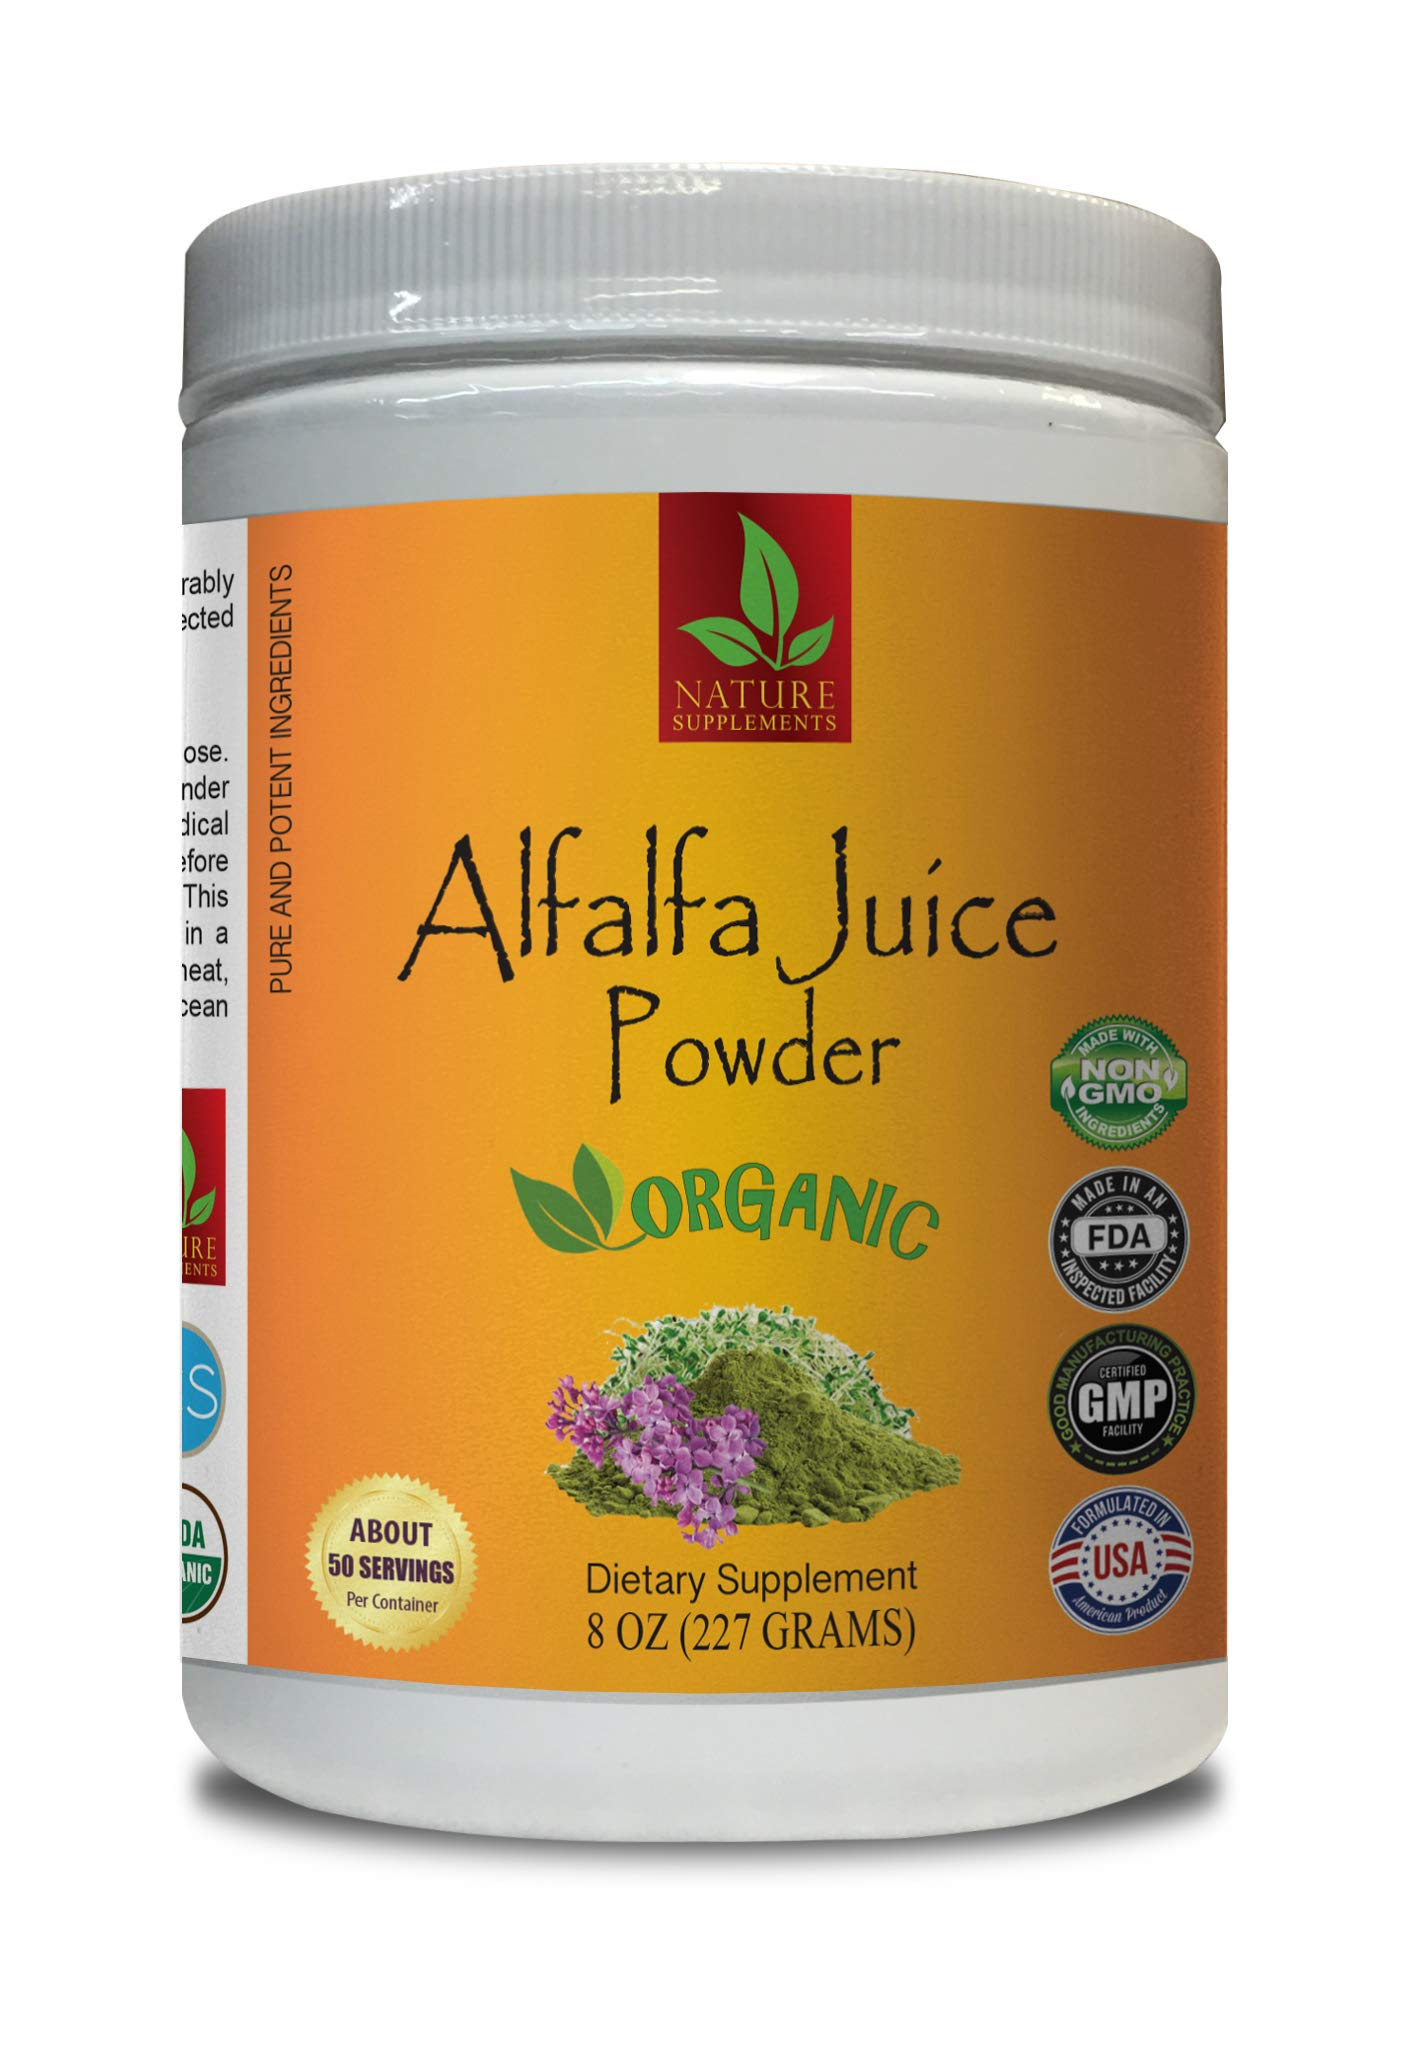 antioxidant Powder Organic - Alfalfa Juice Organic Powder - Pure and Potent Ingredients - Alfalfa Organic - 1 Can 8 OZ (50 Servings)